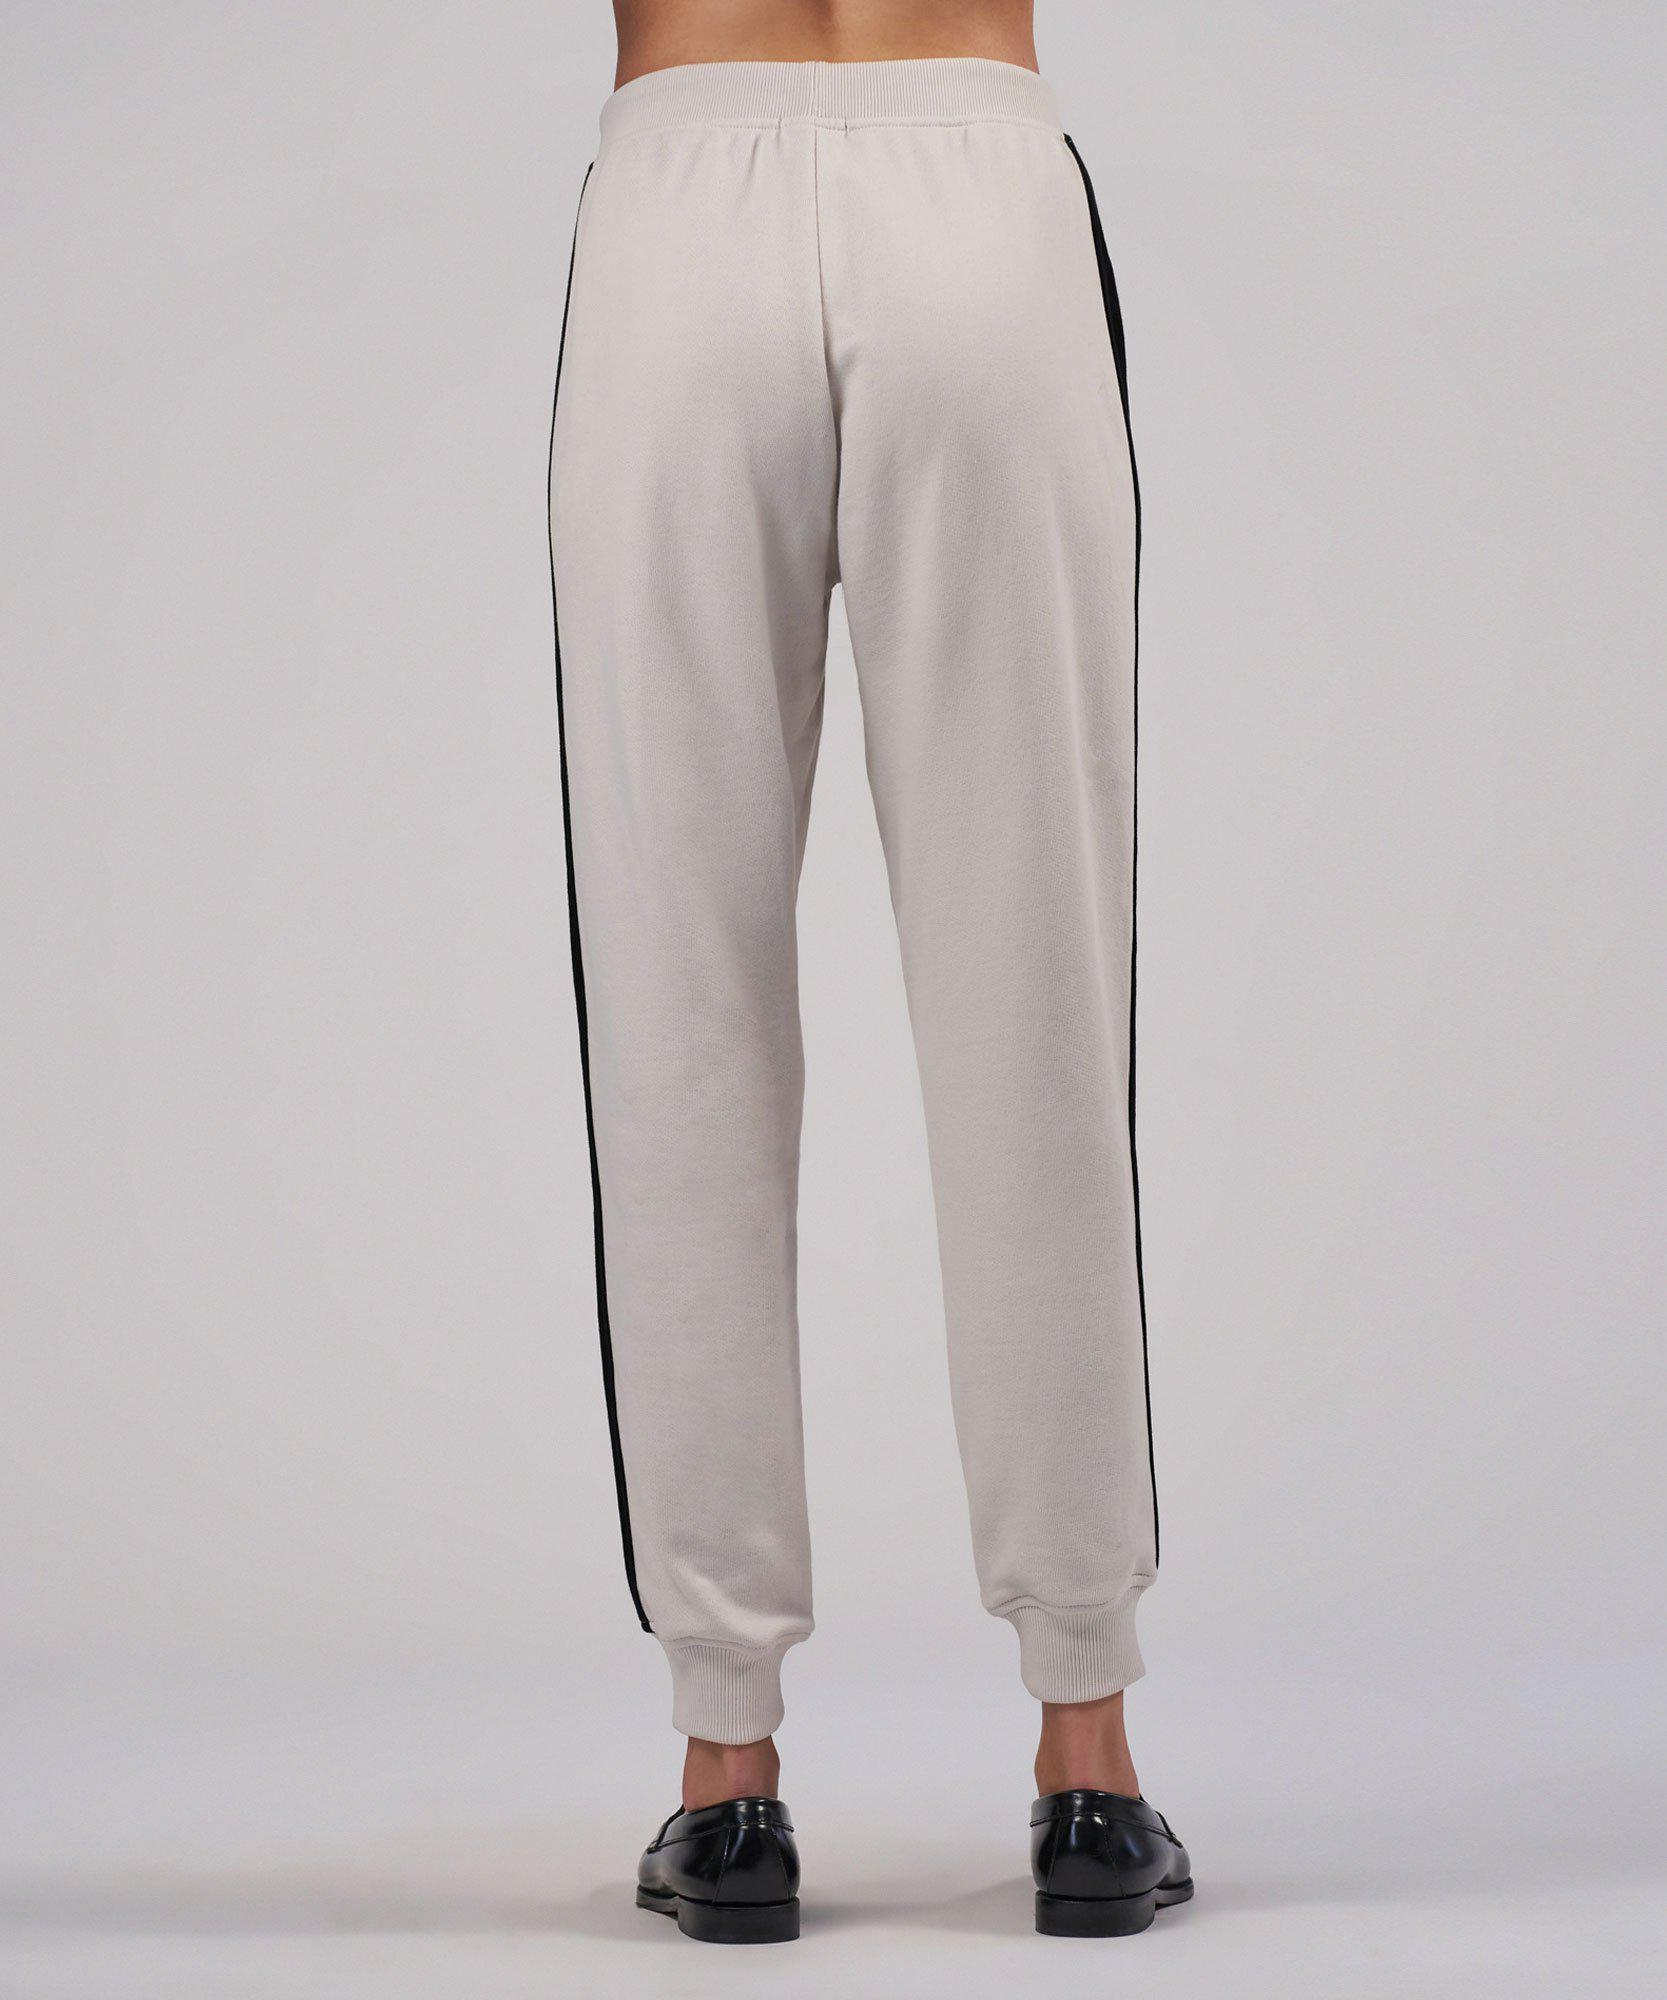 French Terry Racing Stripe Pull-On Pants - Tan Combo 2